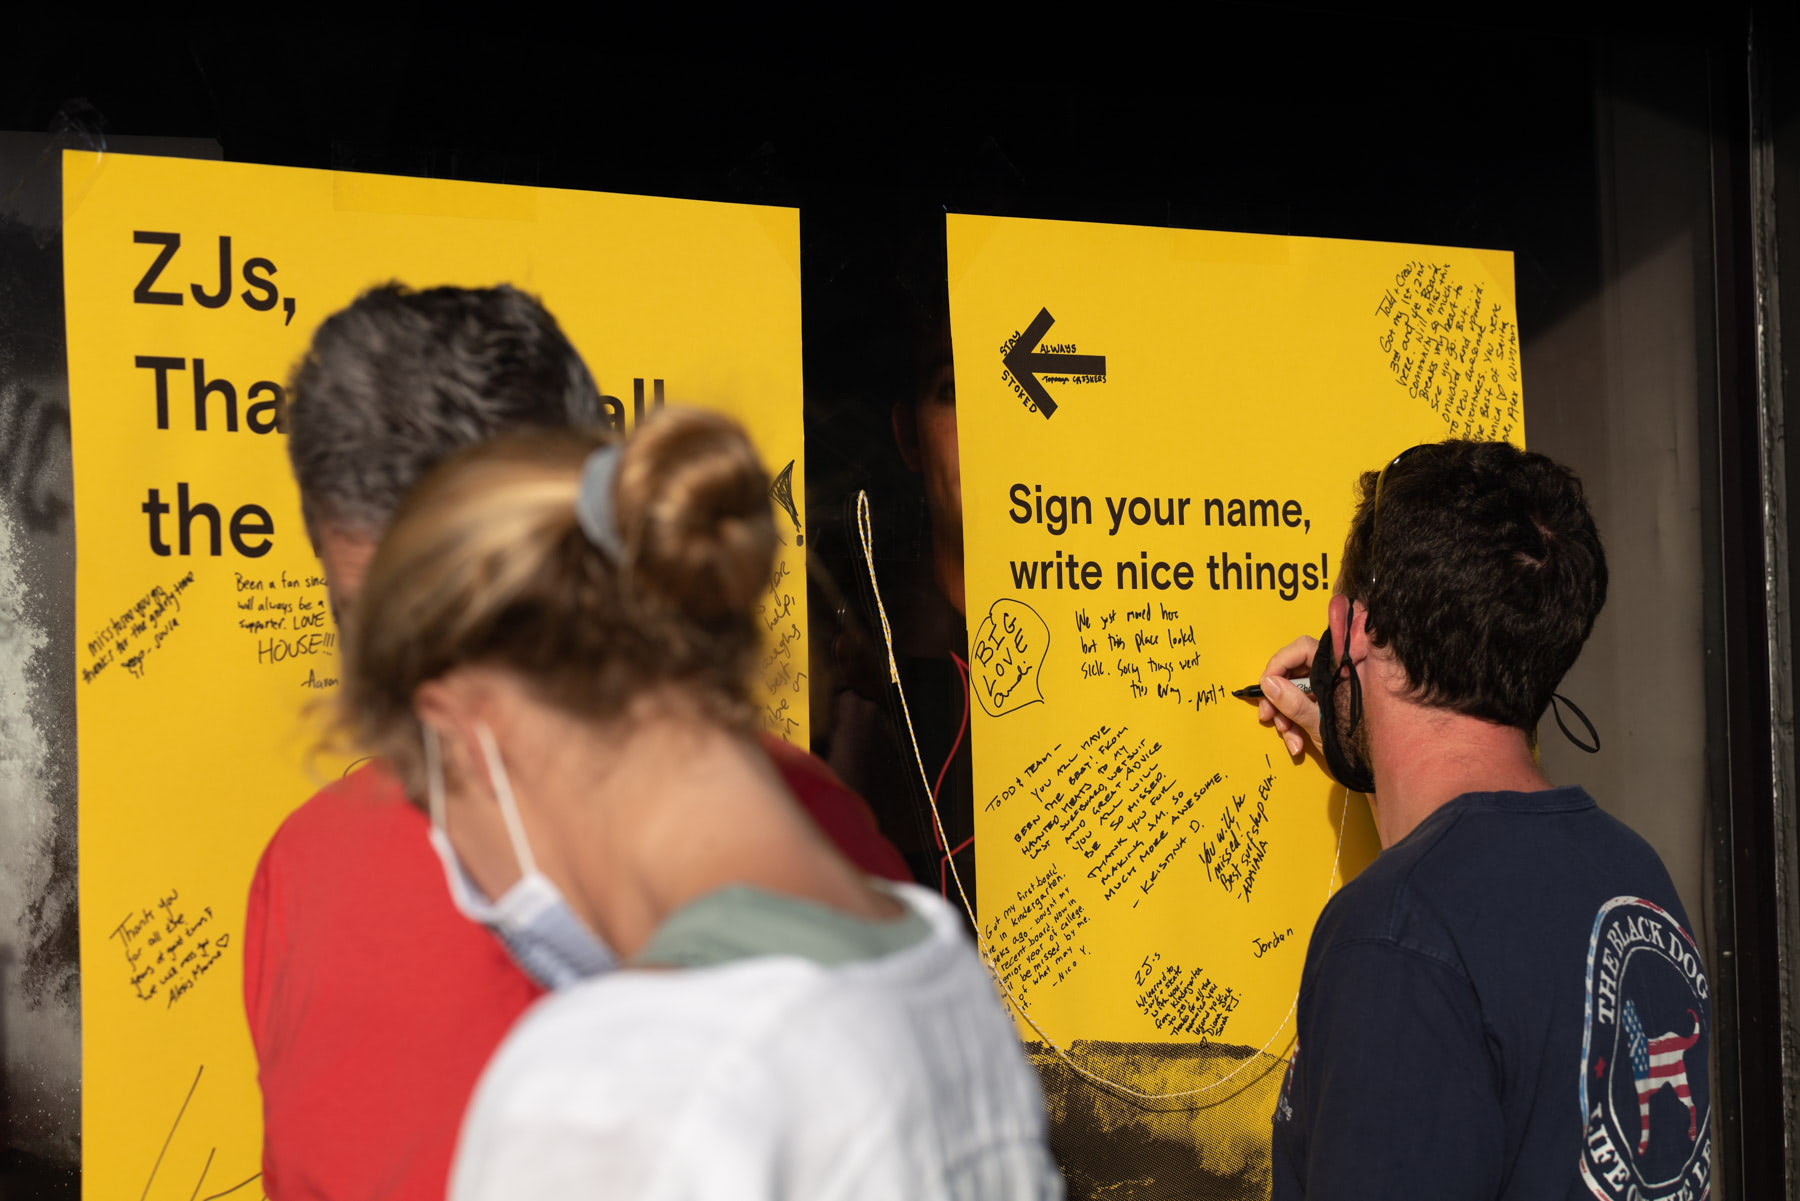 zjs boarding shop closing more writing on poster